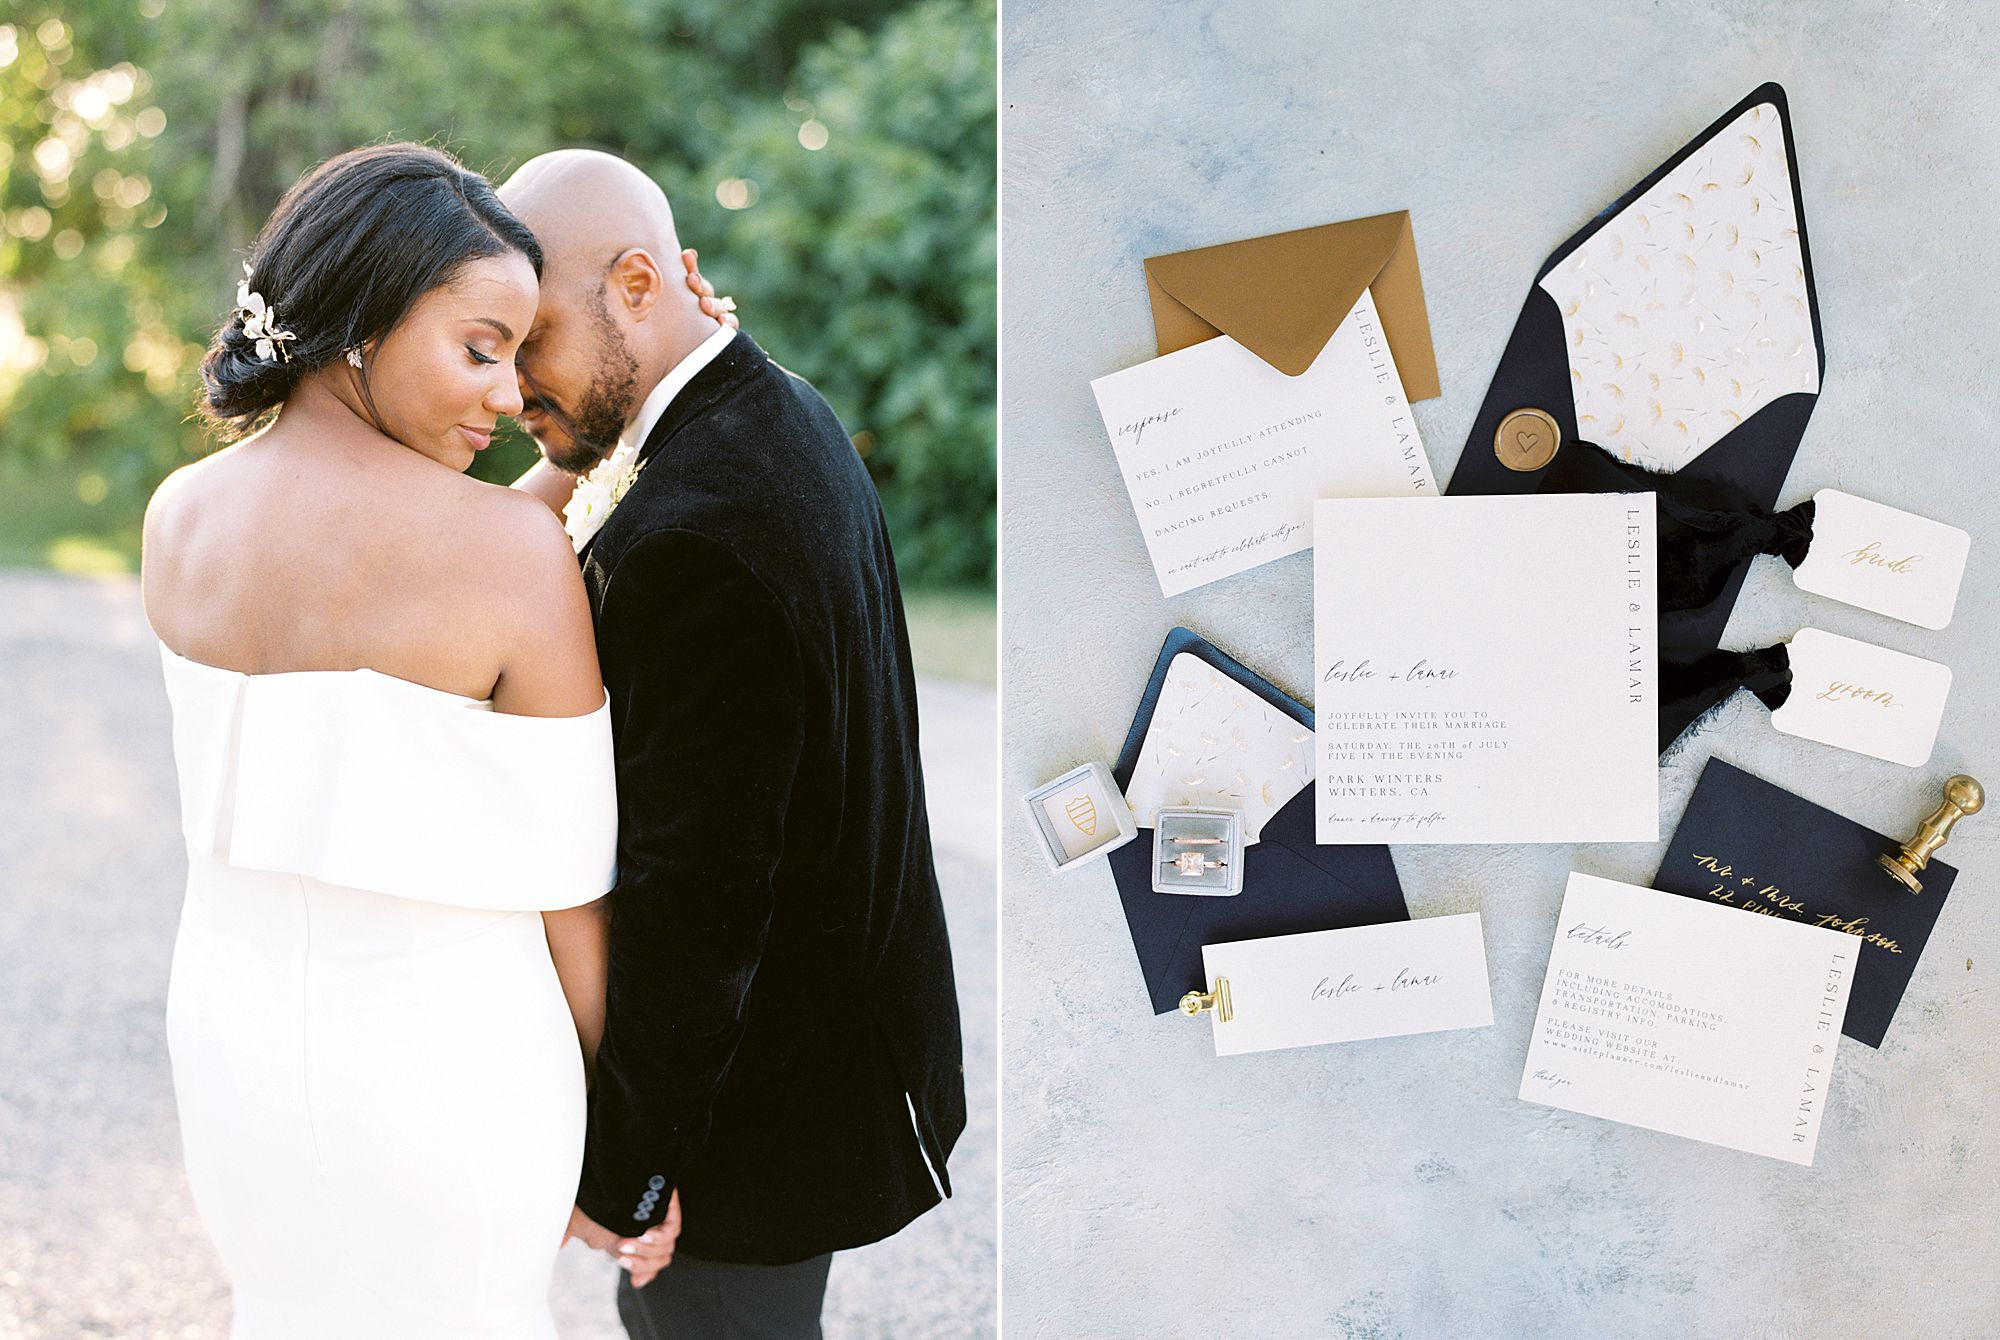 Park Winters Micro-Wedding Inspiration on Style Me Pretty - Stephanie Teague Events - Ashley Baumgartner - Park Winters Wedding - Black Tie Wedding - Micro-Wedding Sacramento Photographer_0025.jpg